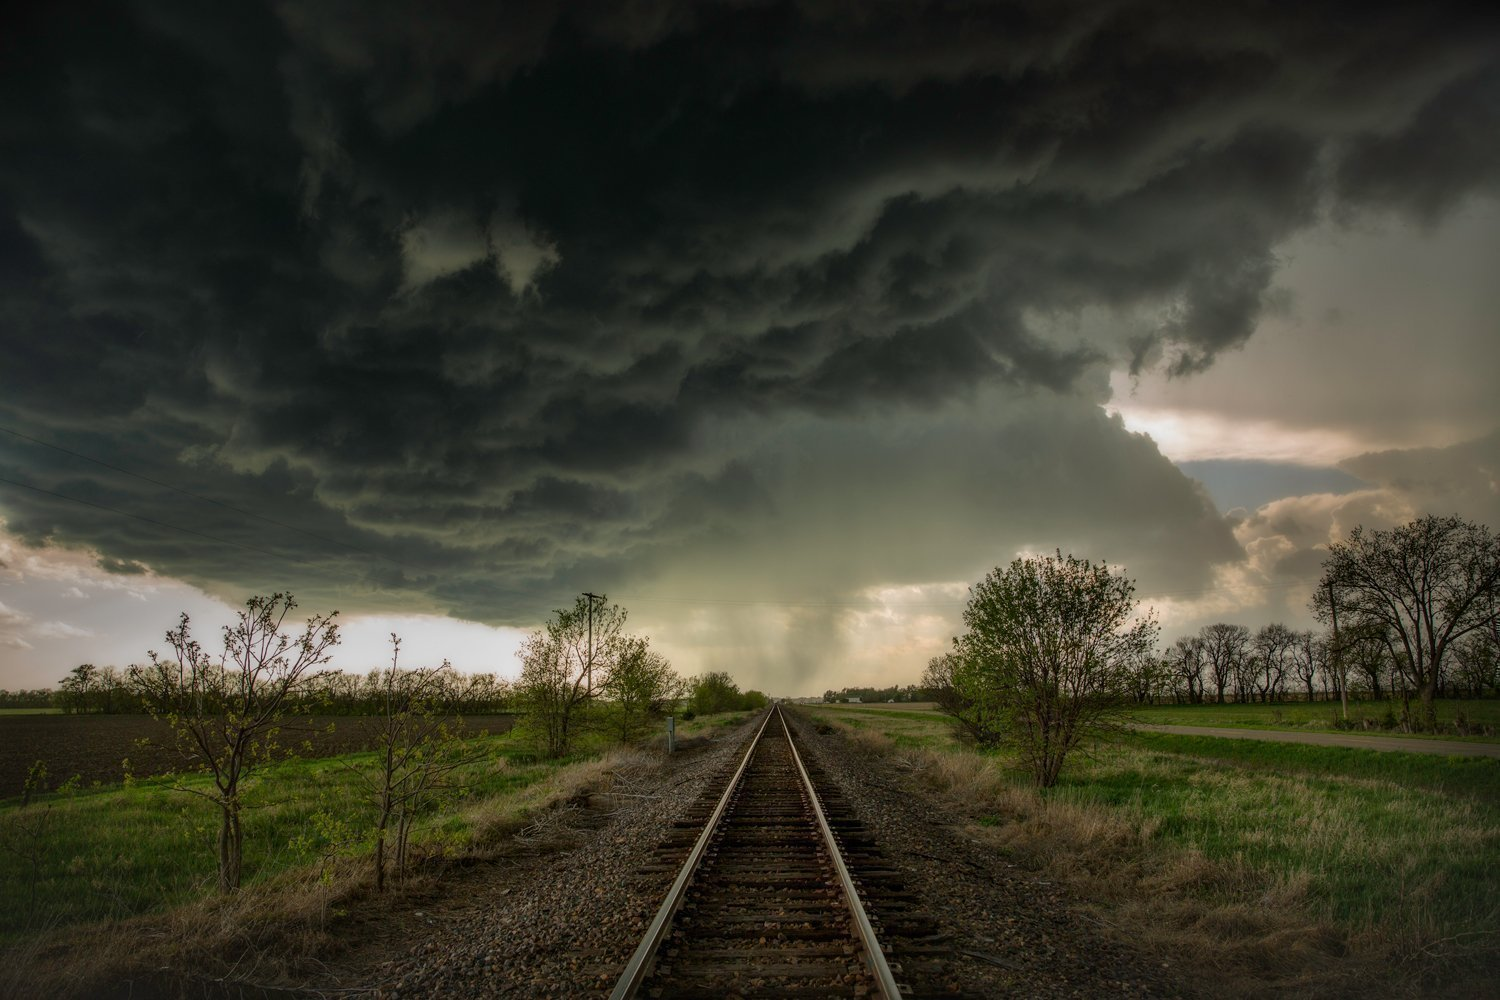 Train Track Photography Art Print - Picture of Tracks Leading Into Storm Clouds in Kansas Fine Art Decor Artwork for Home Decoration 5x7 to 30x45 by Southern Plains Photography (Image #1)